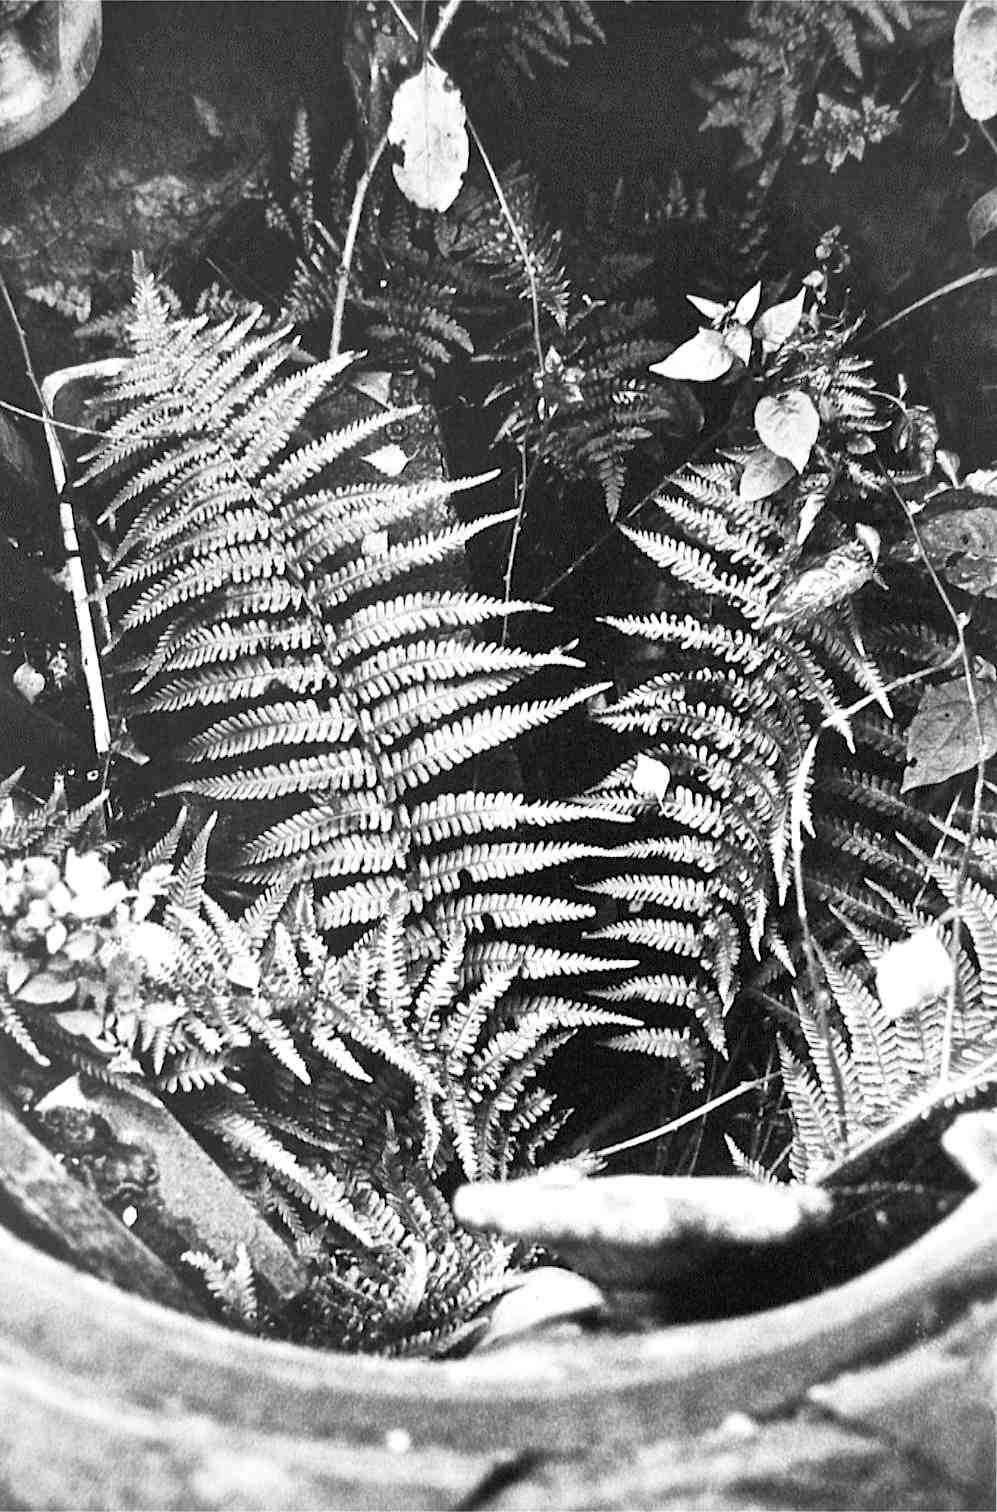 Fern Garden in Military Tank Access Hatch